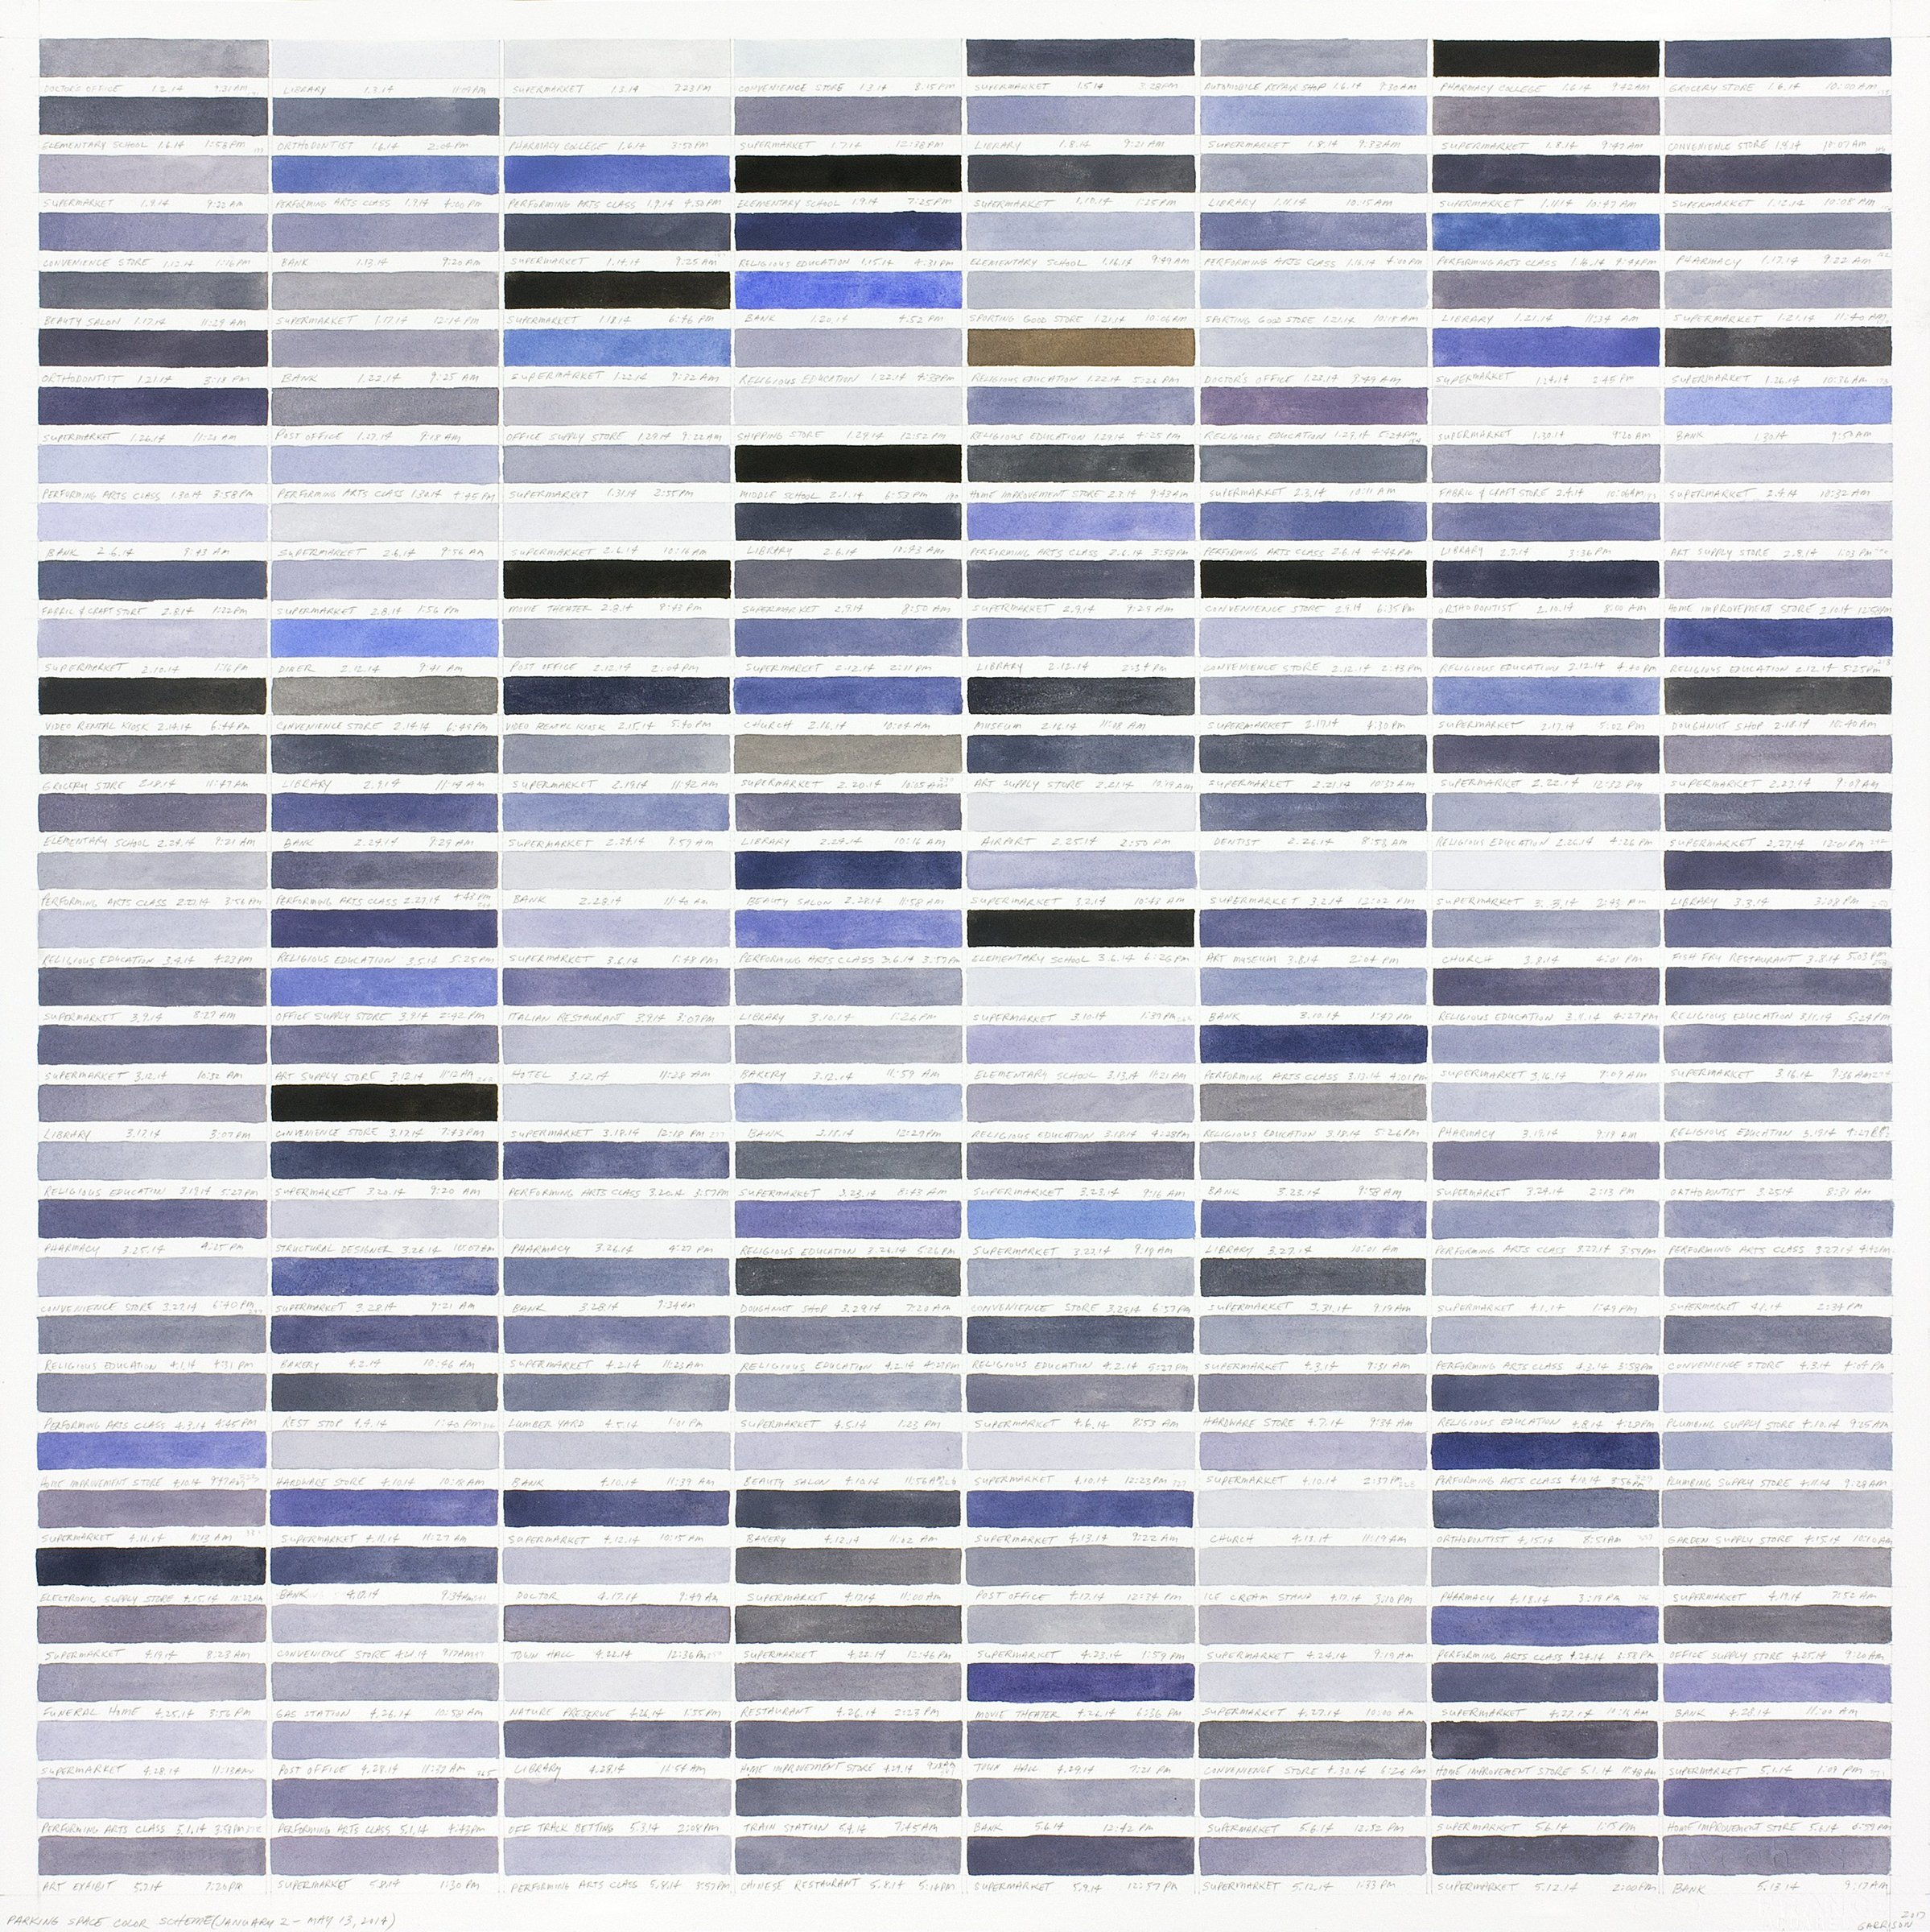 Richard Garrison, Parking Lot Spaces (January 2-May 13, 2014), 2017